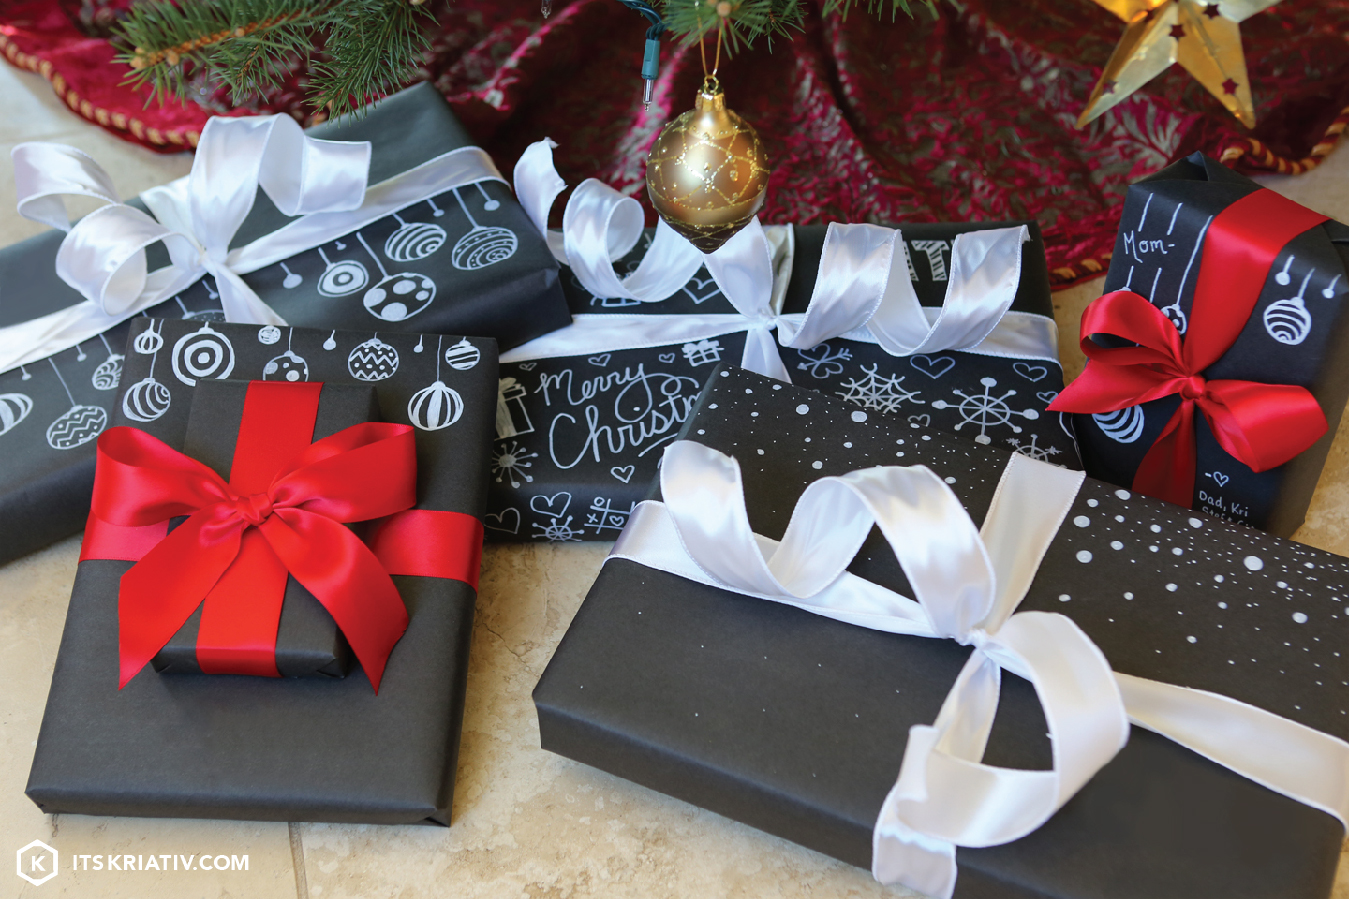 Its-Kriativ-December-Decor-Holiday-Gift-Krafty-Wrapping-04.jpg